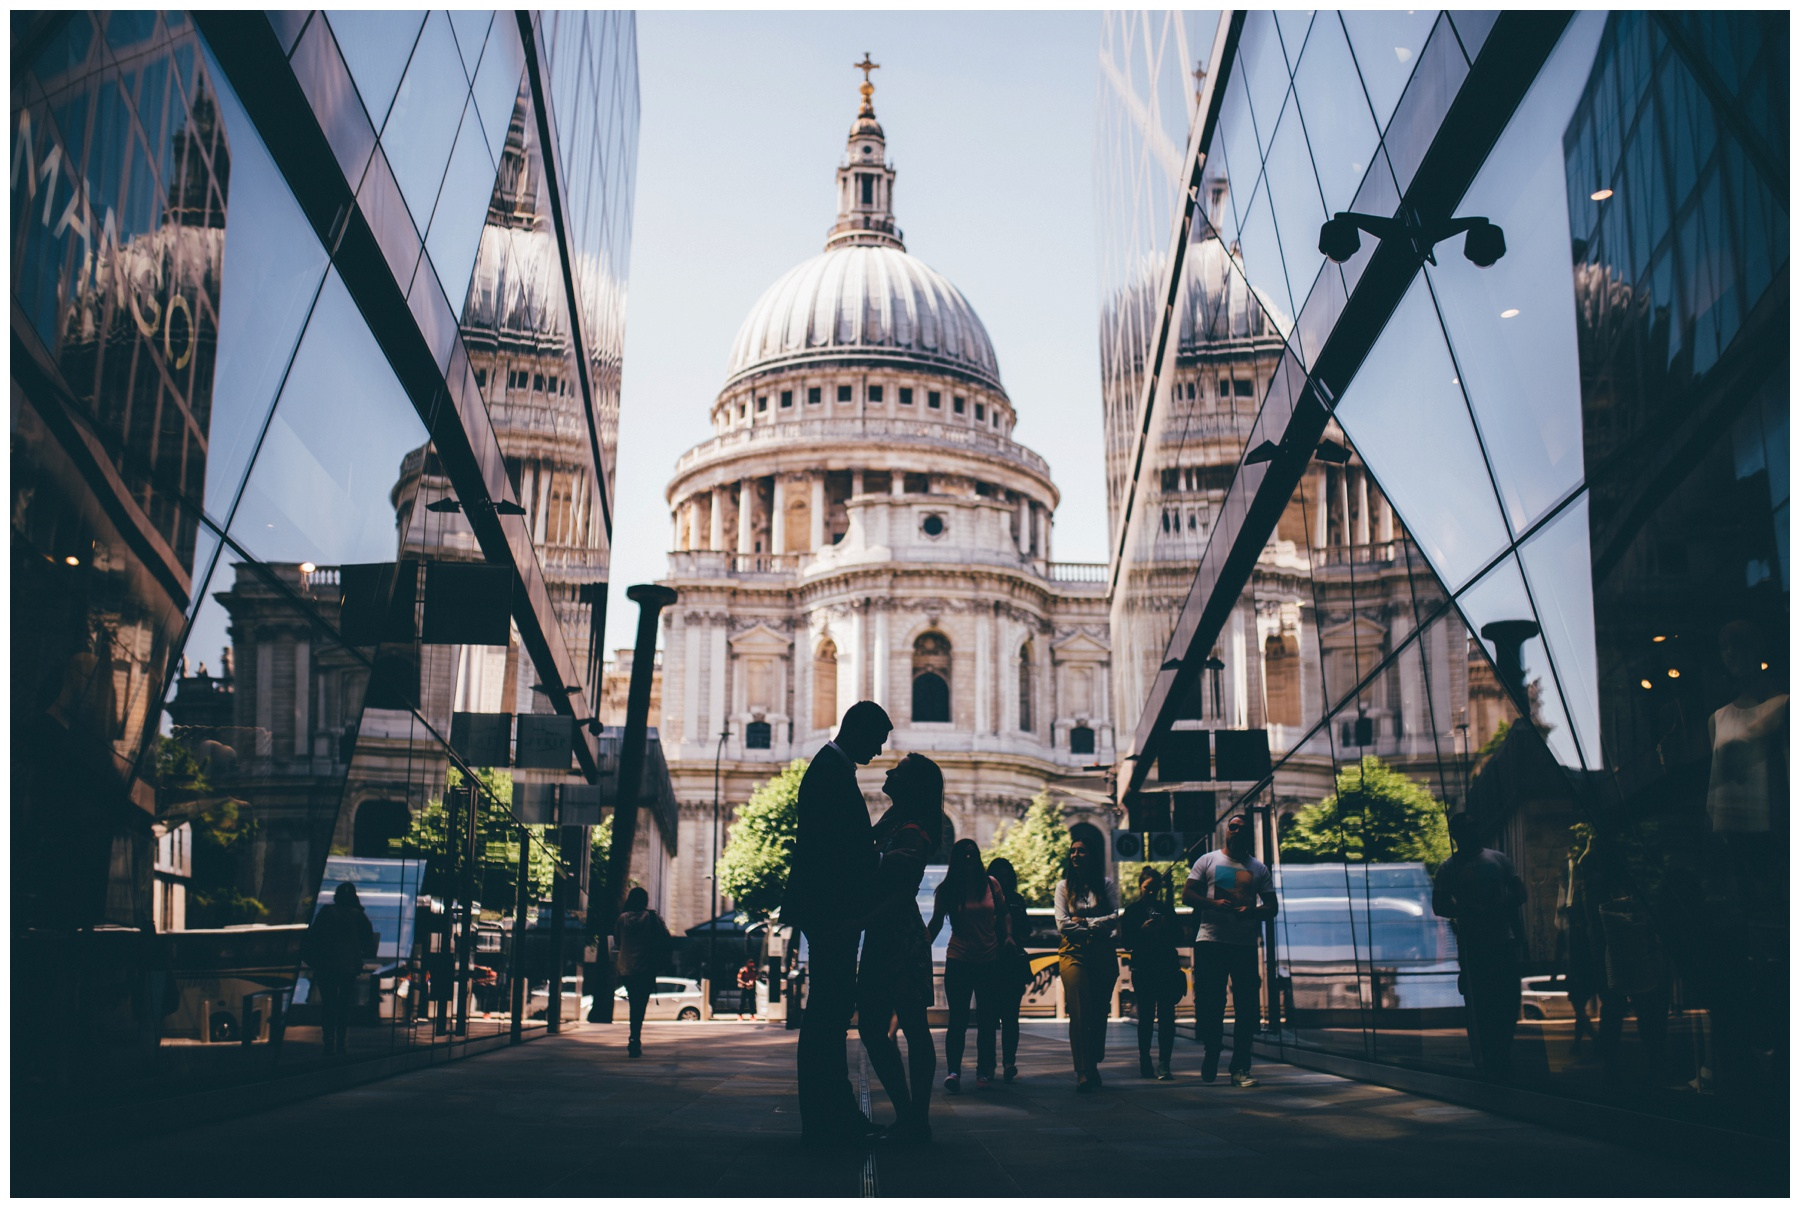 St Paul's Cathedral is the backdrop for a One New Change wedding photoshoot in a London City Centre wedding.